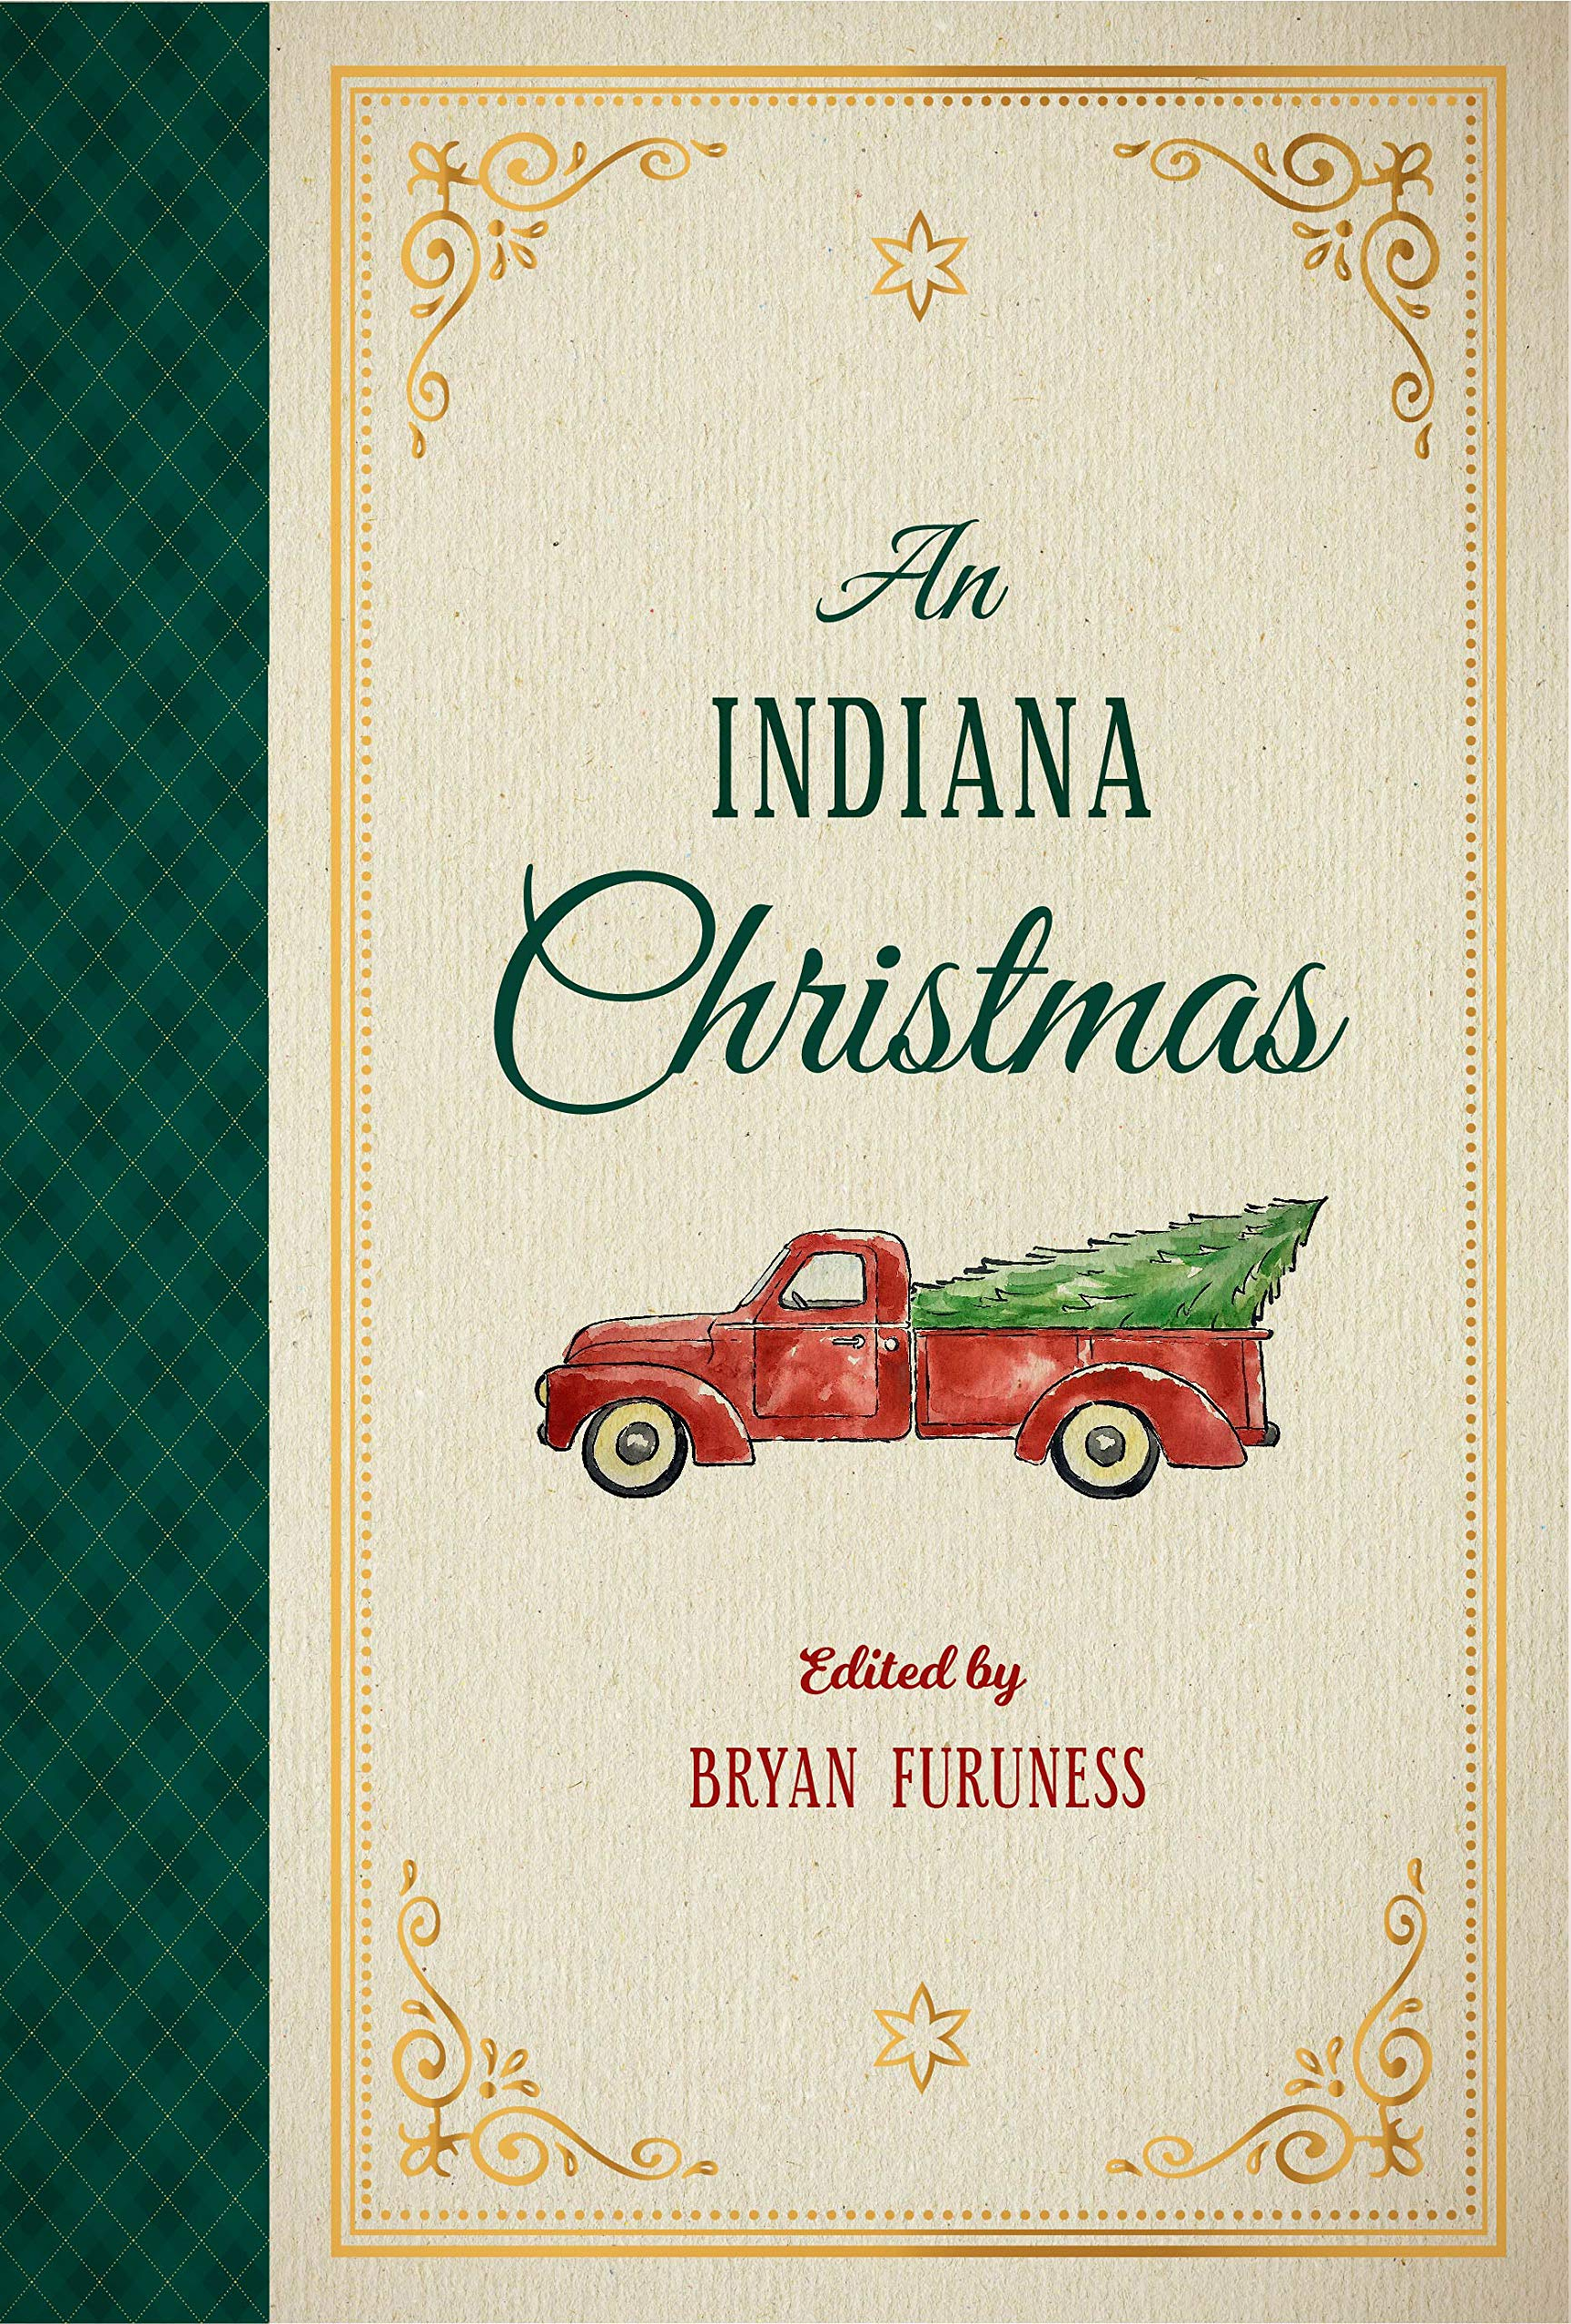 Christmas In The Adobes 2020 An Indiana Christmas: Furuness, Bryan: 9780253050281: Amazon.